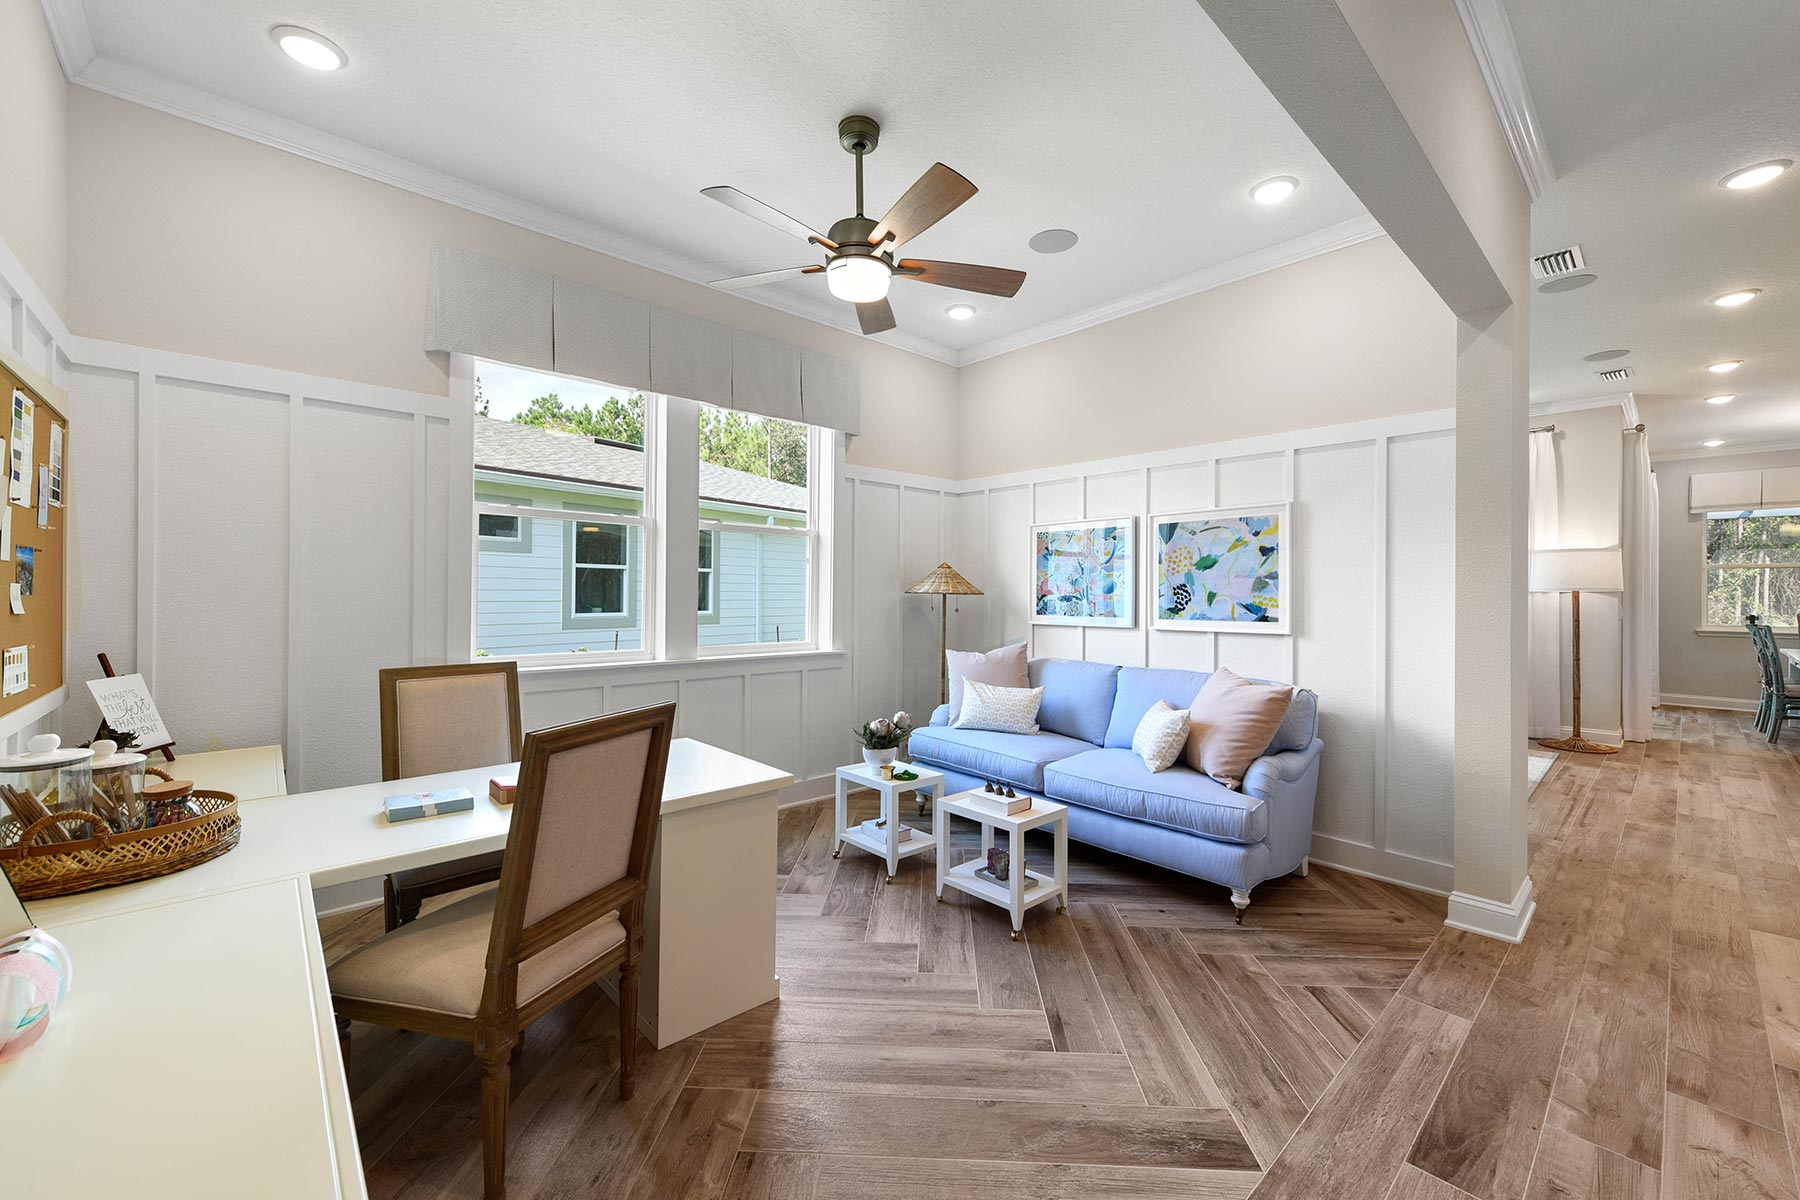 Court Plan Interior Others at RiverTown - WaterSong in St. Johns Florida by Mattamy Homes